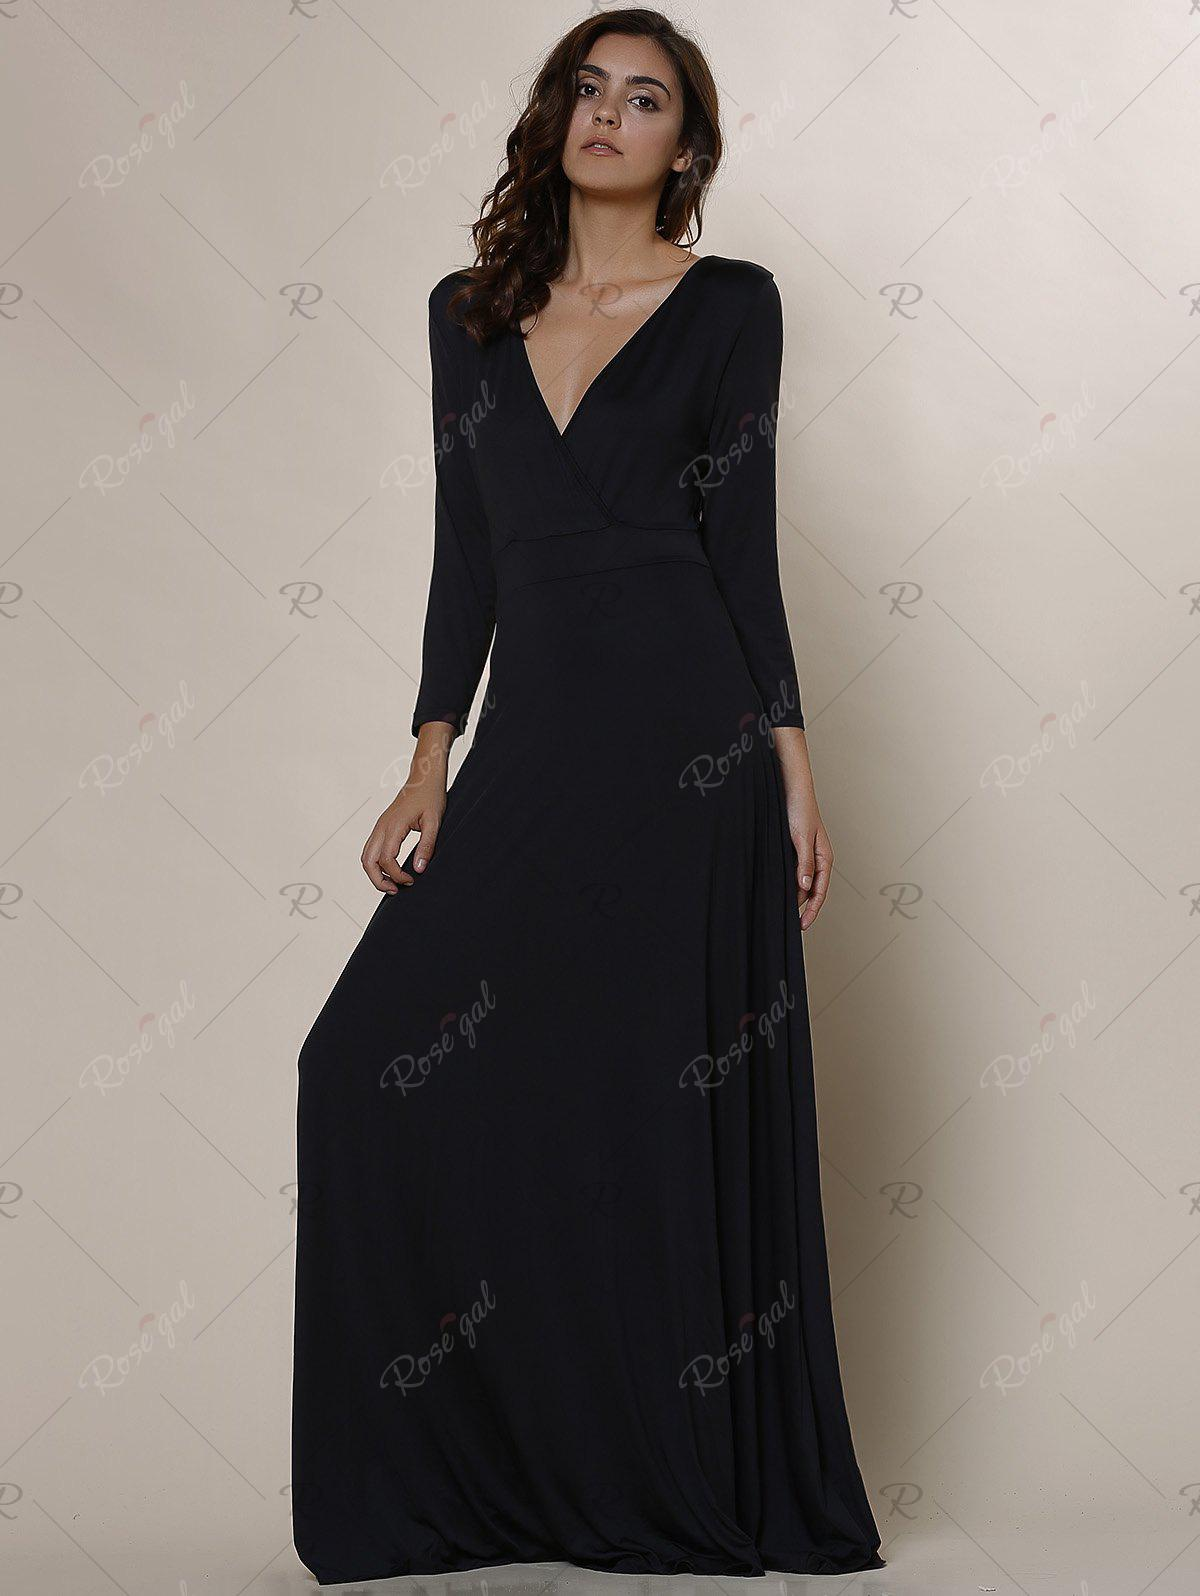 black xl plus size low cut prom dress with sleeves